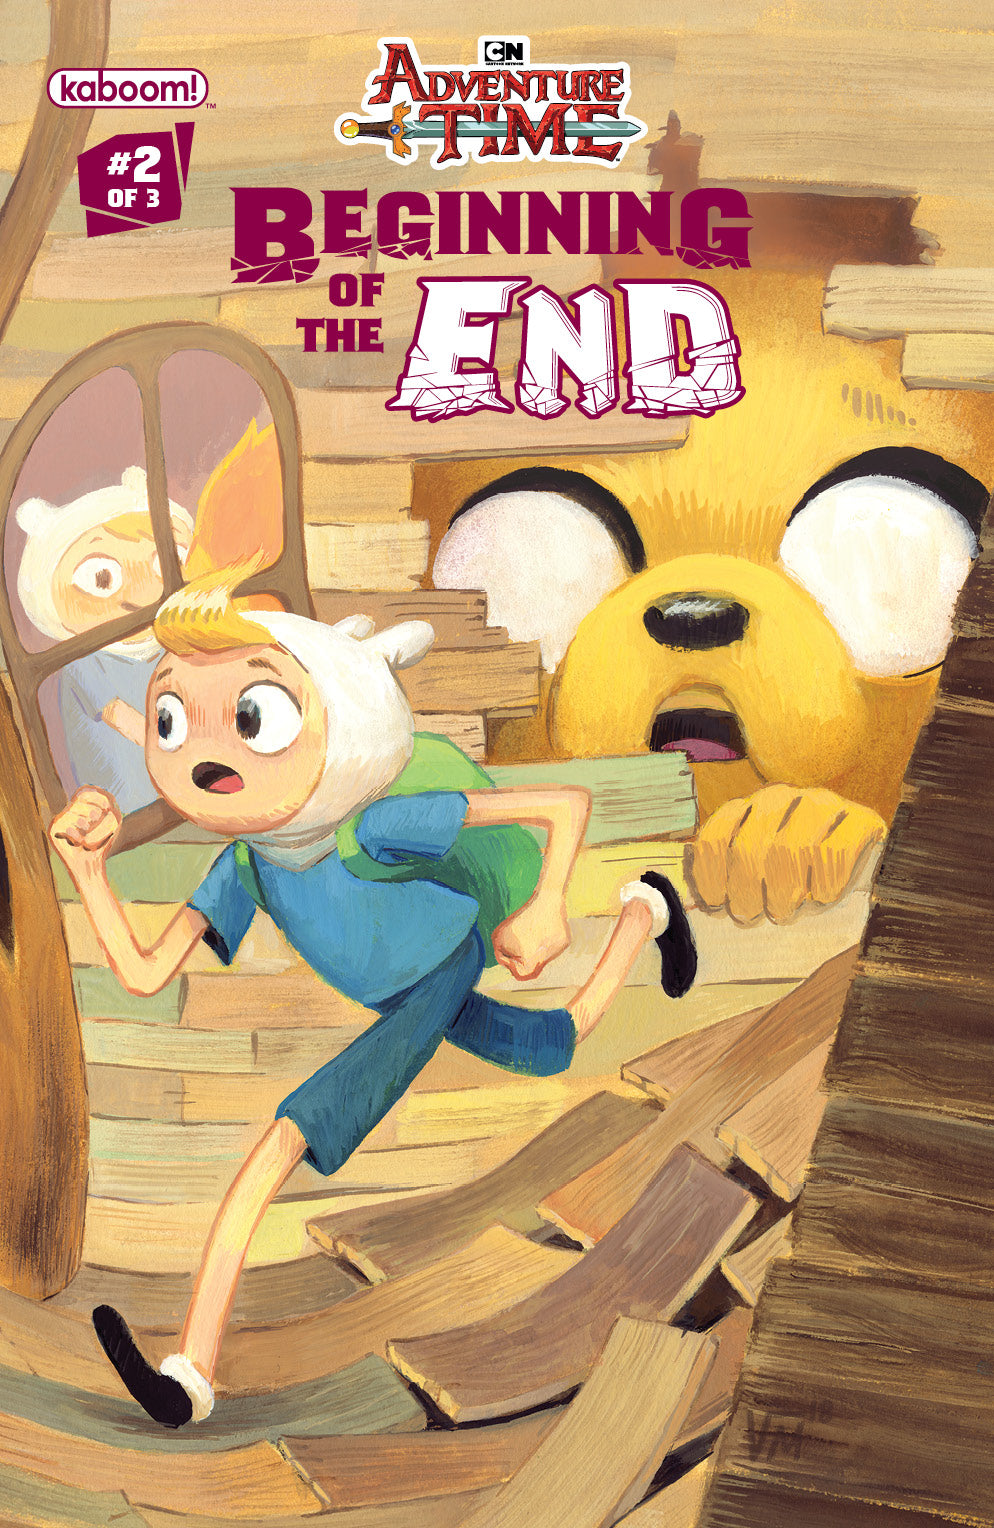 ADVENTURE TIME BEGINNING OF THE END #2